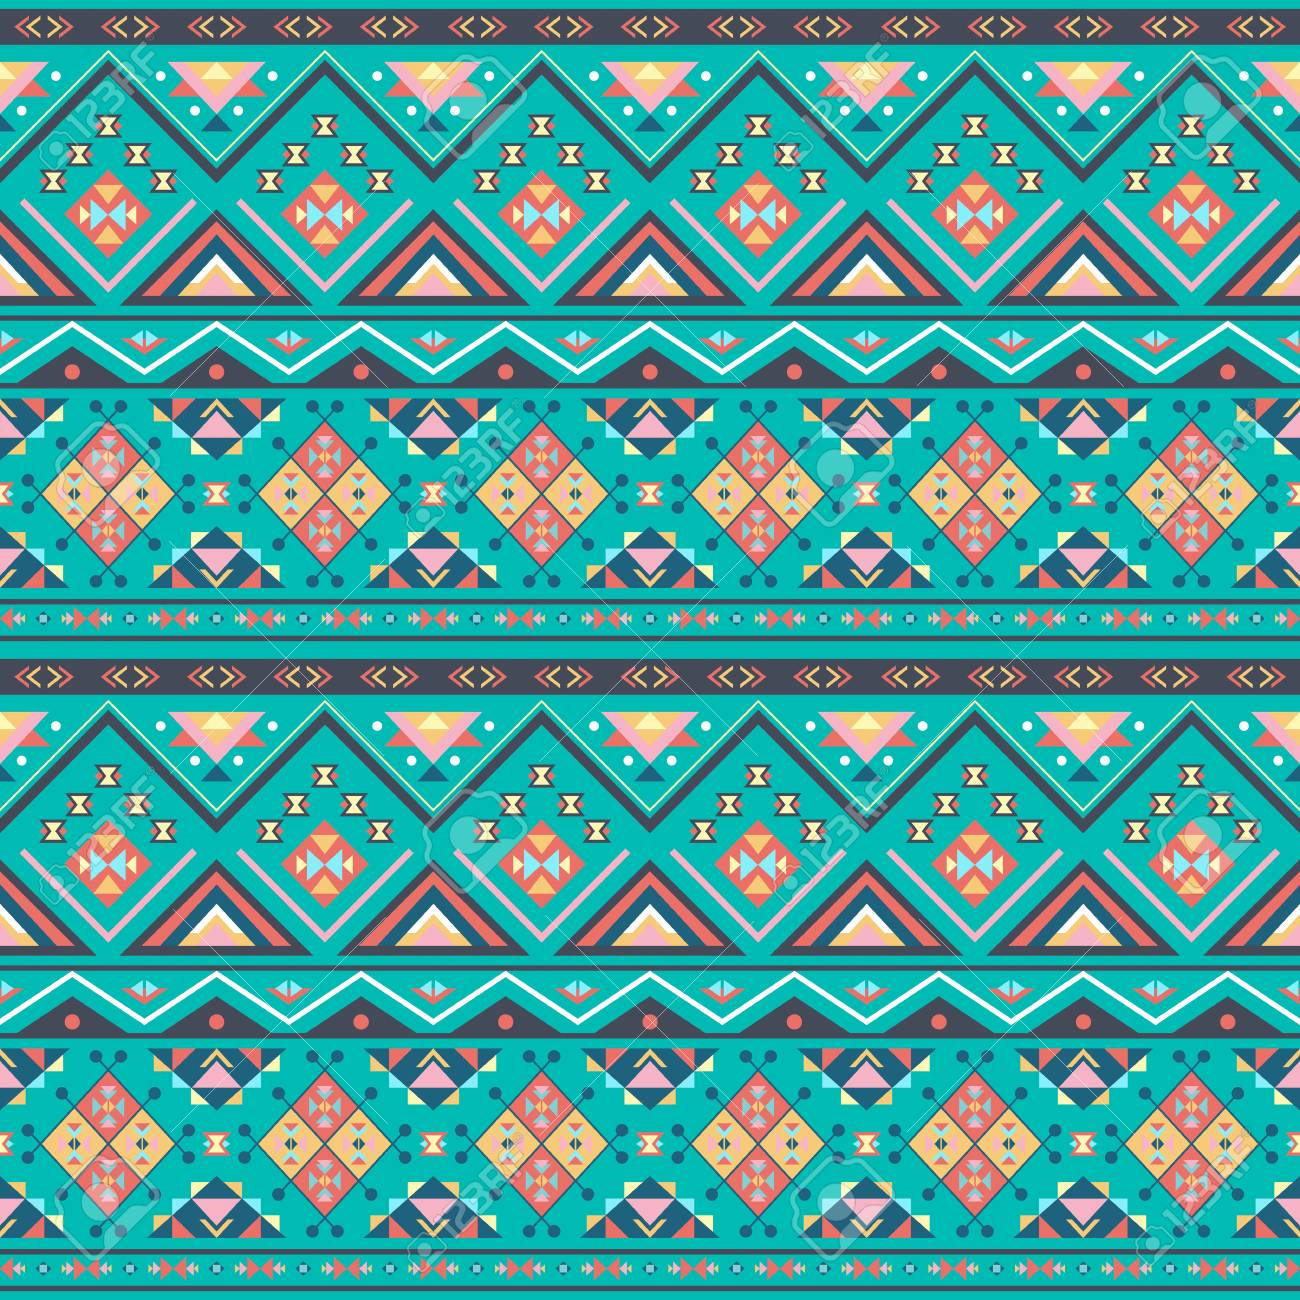 Ethnic Boho Seamless Patterns Vintage Ornament Abstract